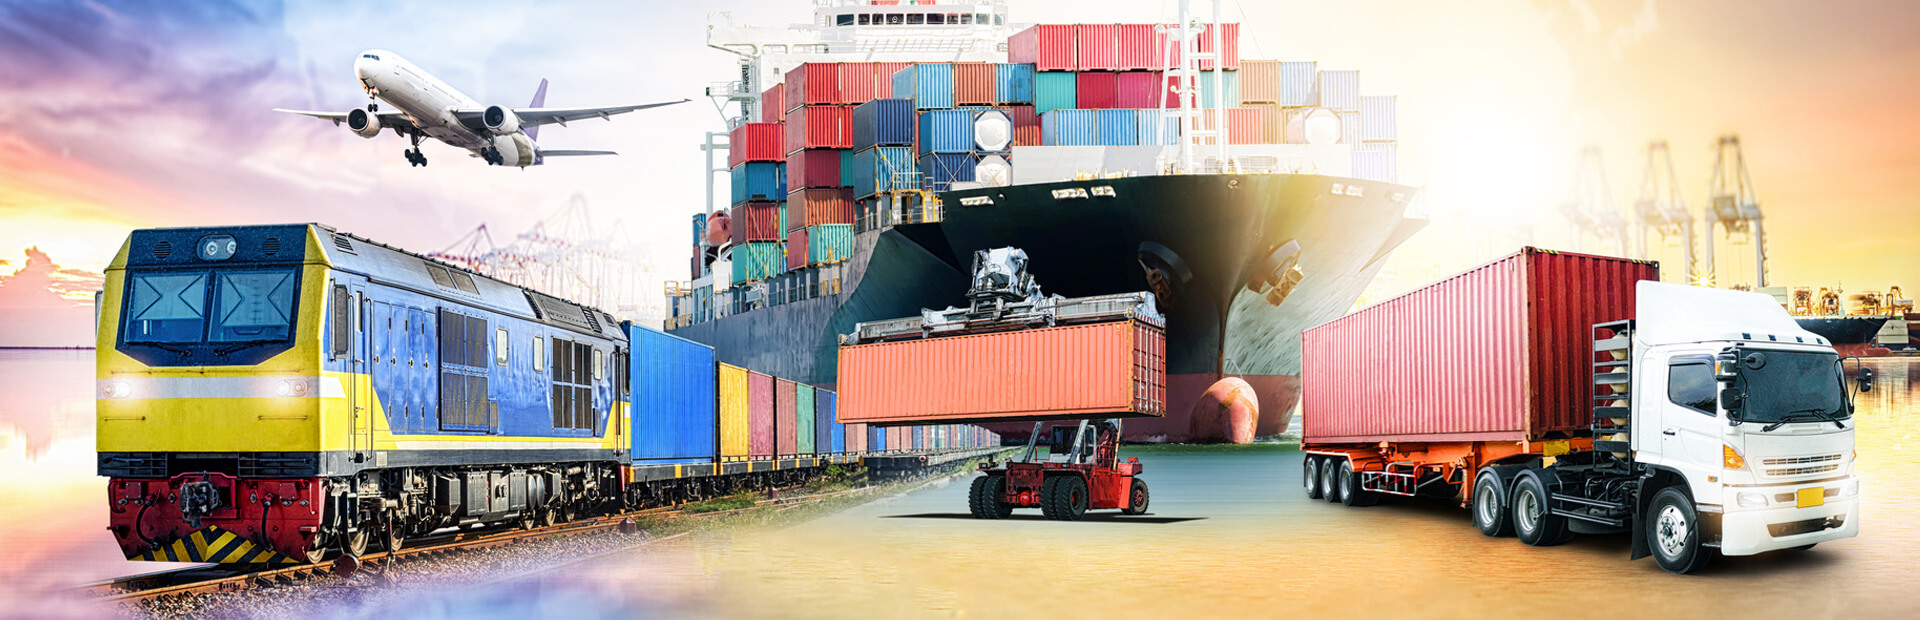 Imports and Exports - Customs Processing